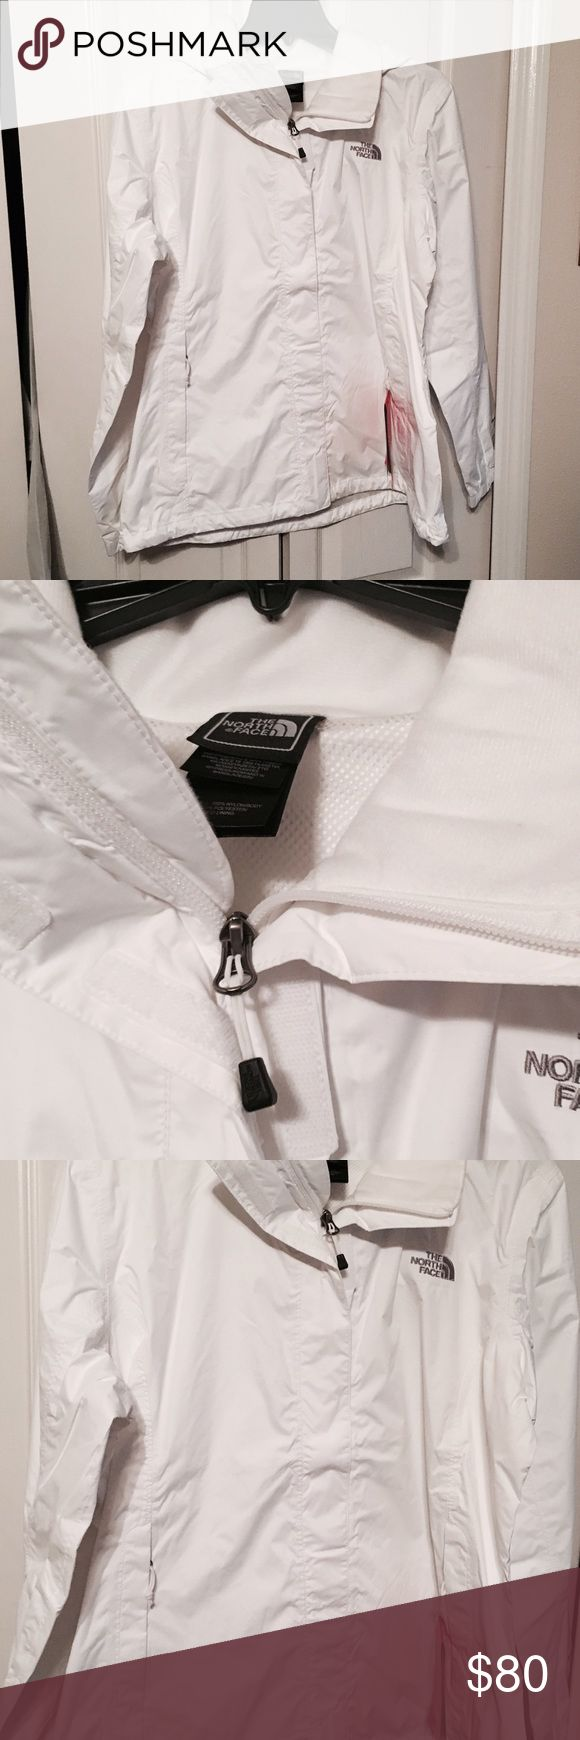 Ladies North Face White Rain Jacket with Hoodie XL NWT Ladies North Face Jacket XL The North Face Jackets & Coats